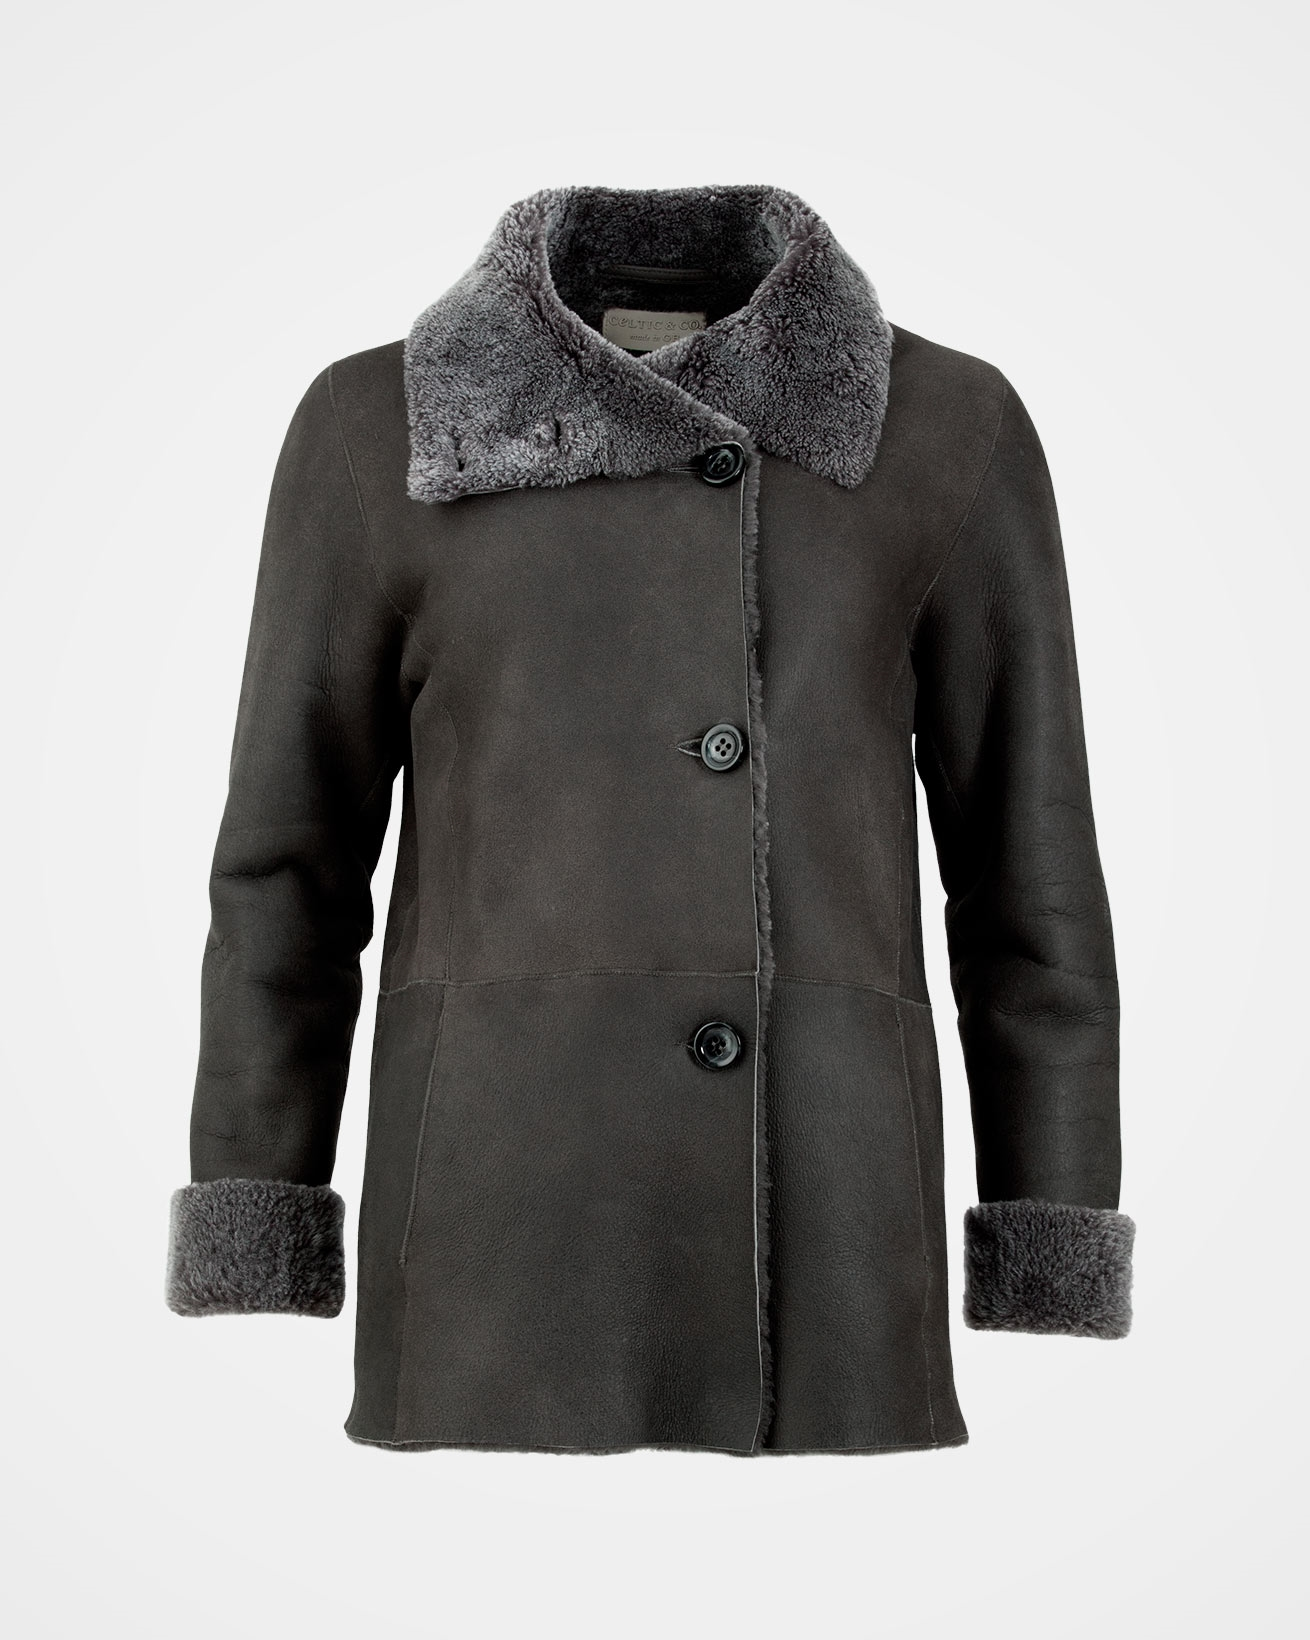 7257_sheepskin-box-jacket_charcoal_front2.jpg